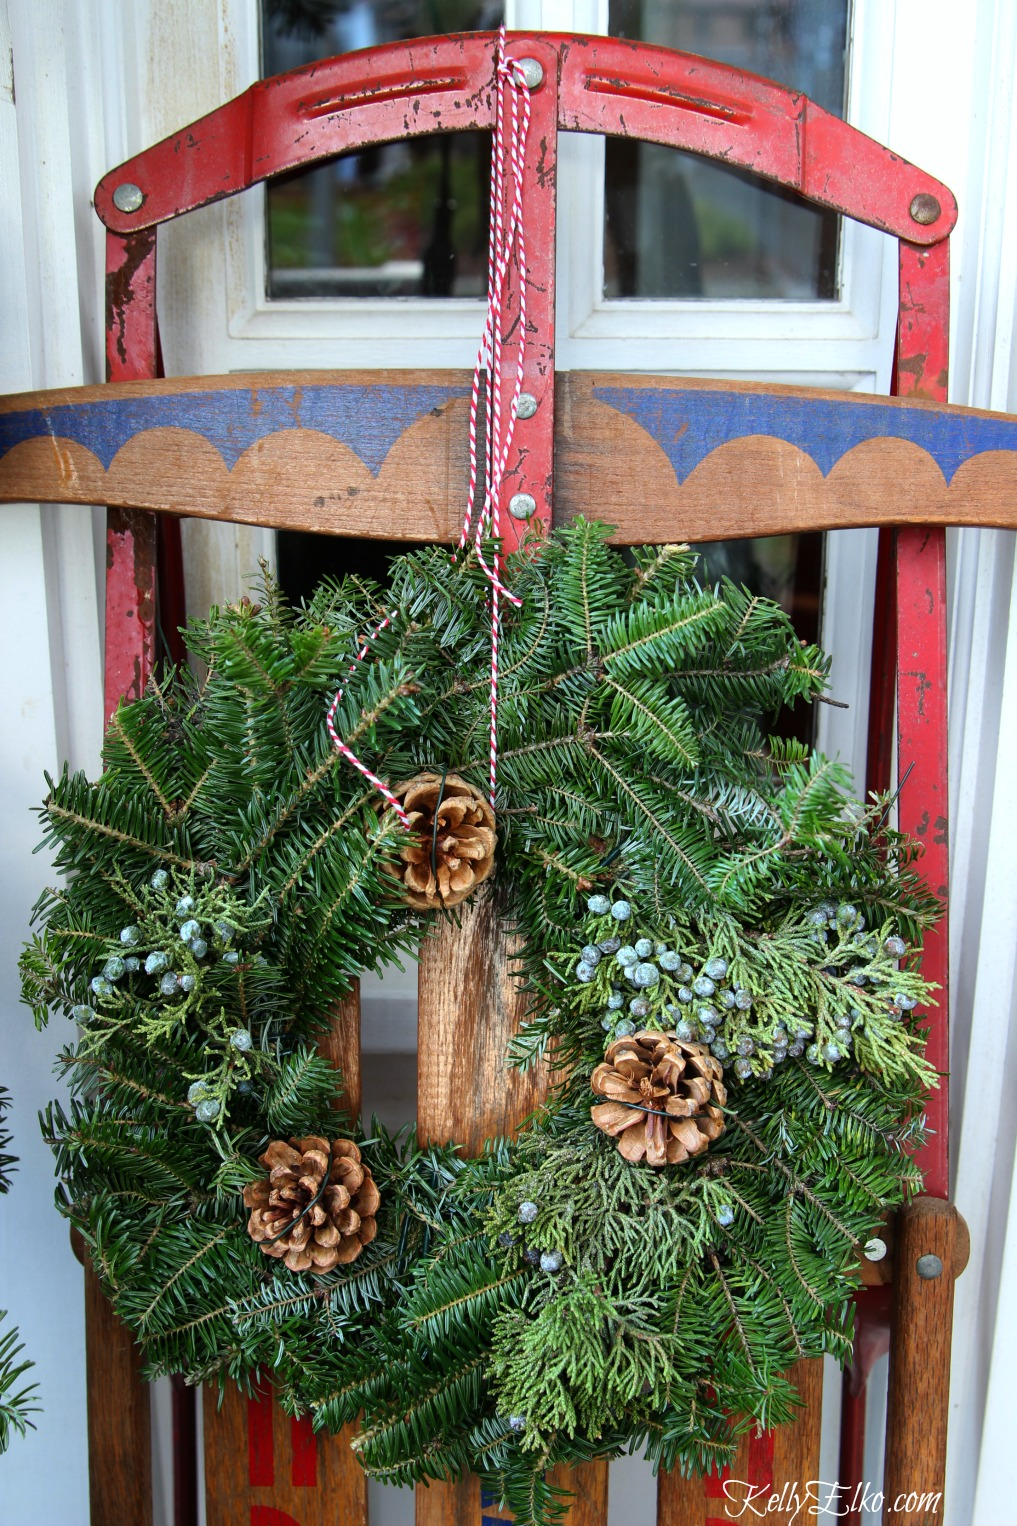 Vintage sled with wreath on this welcoming front porch kellyelko.com